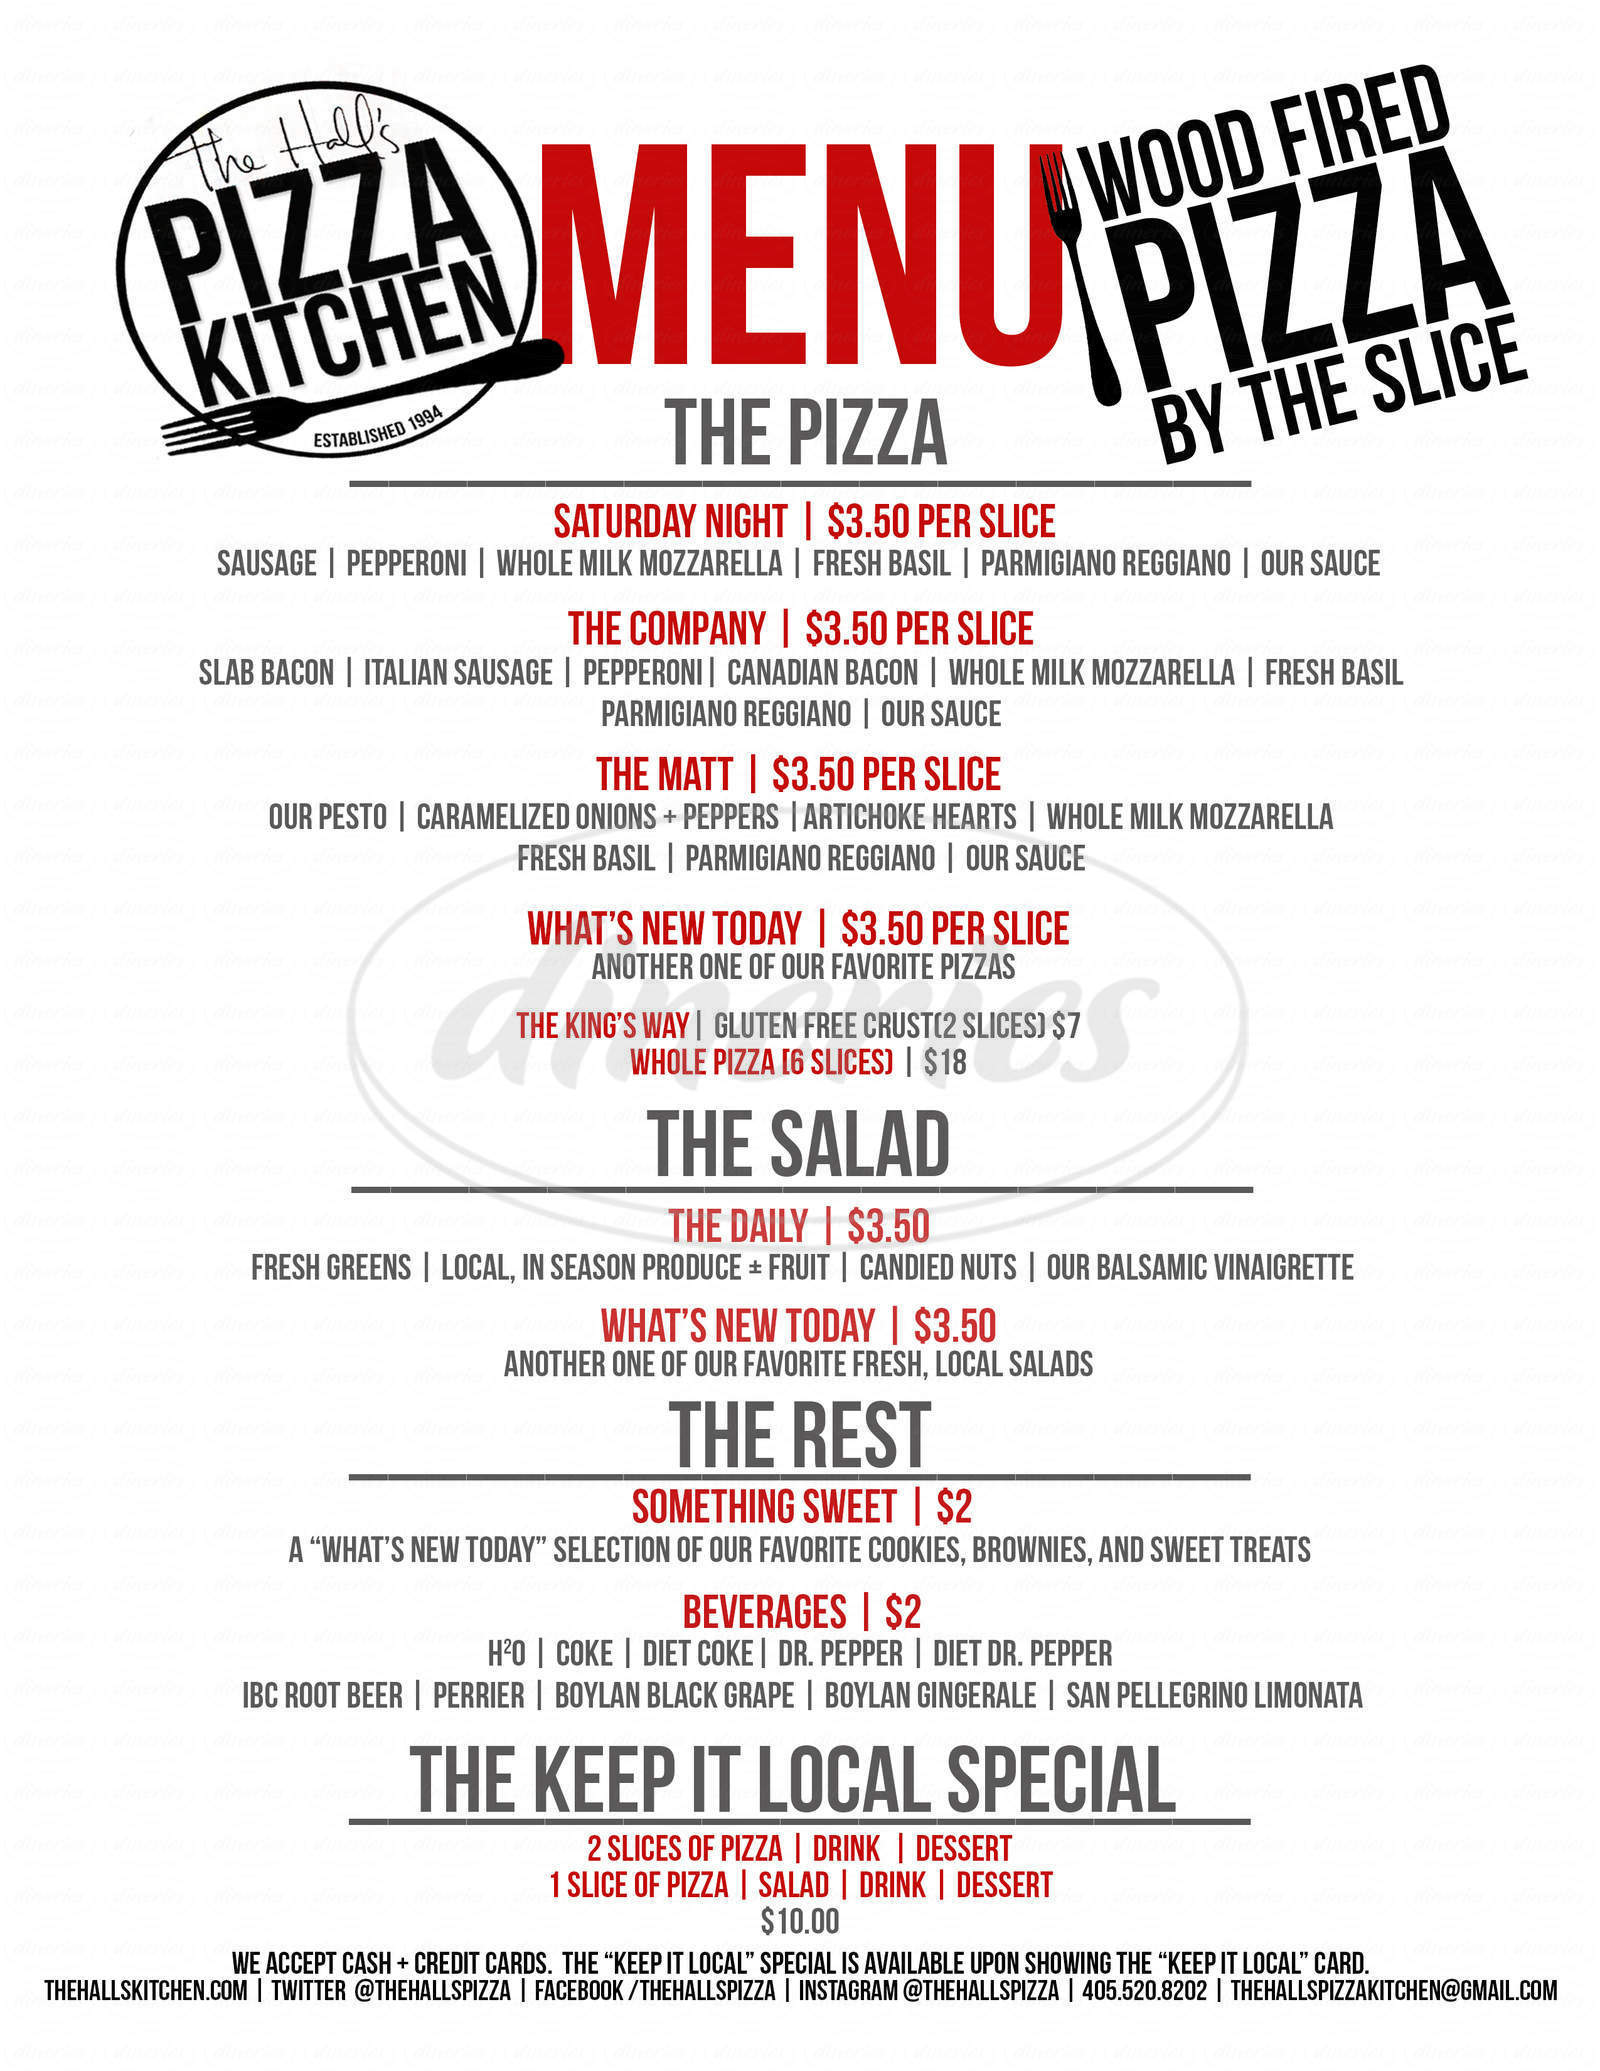 menu for The Hall's Pizza Kitchen